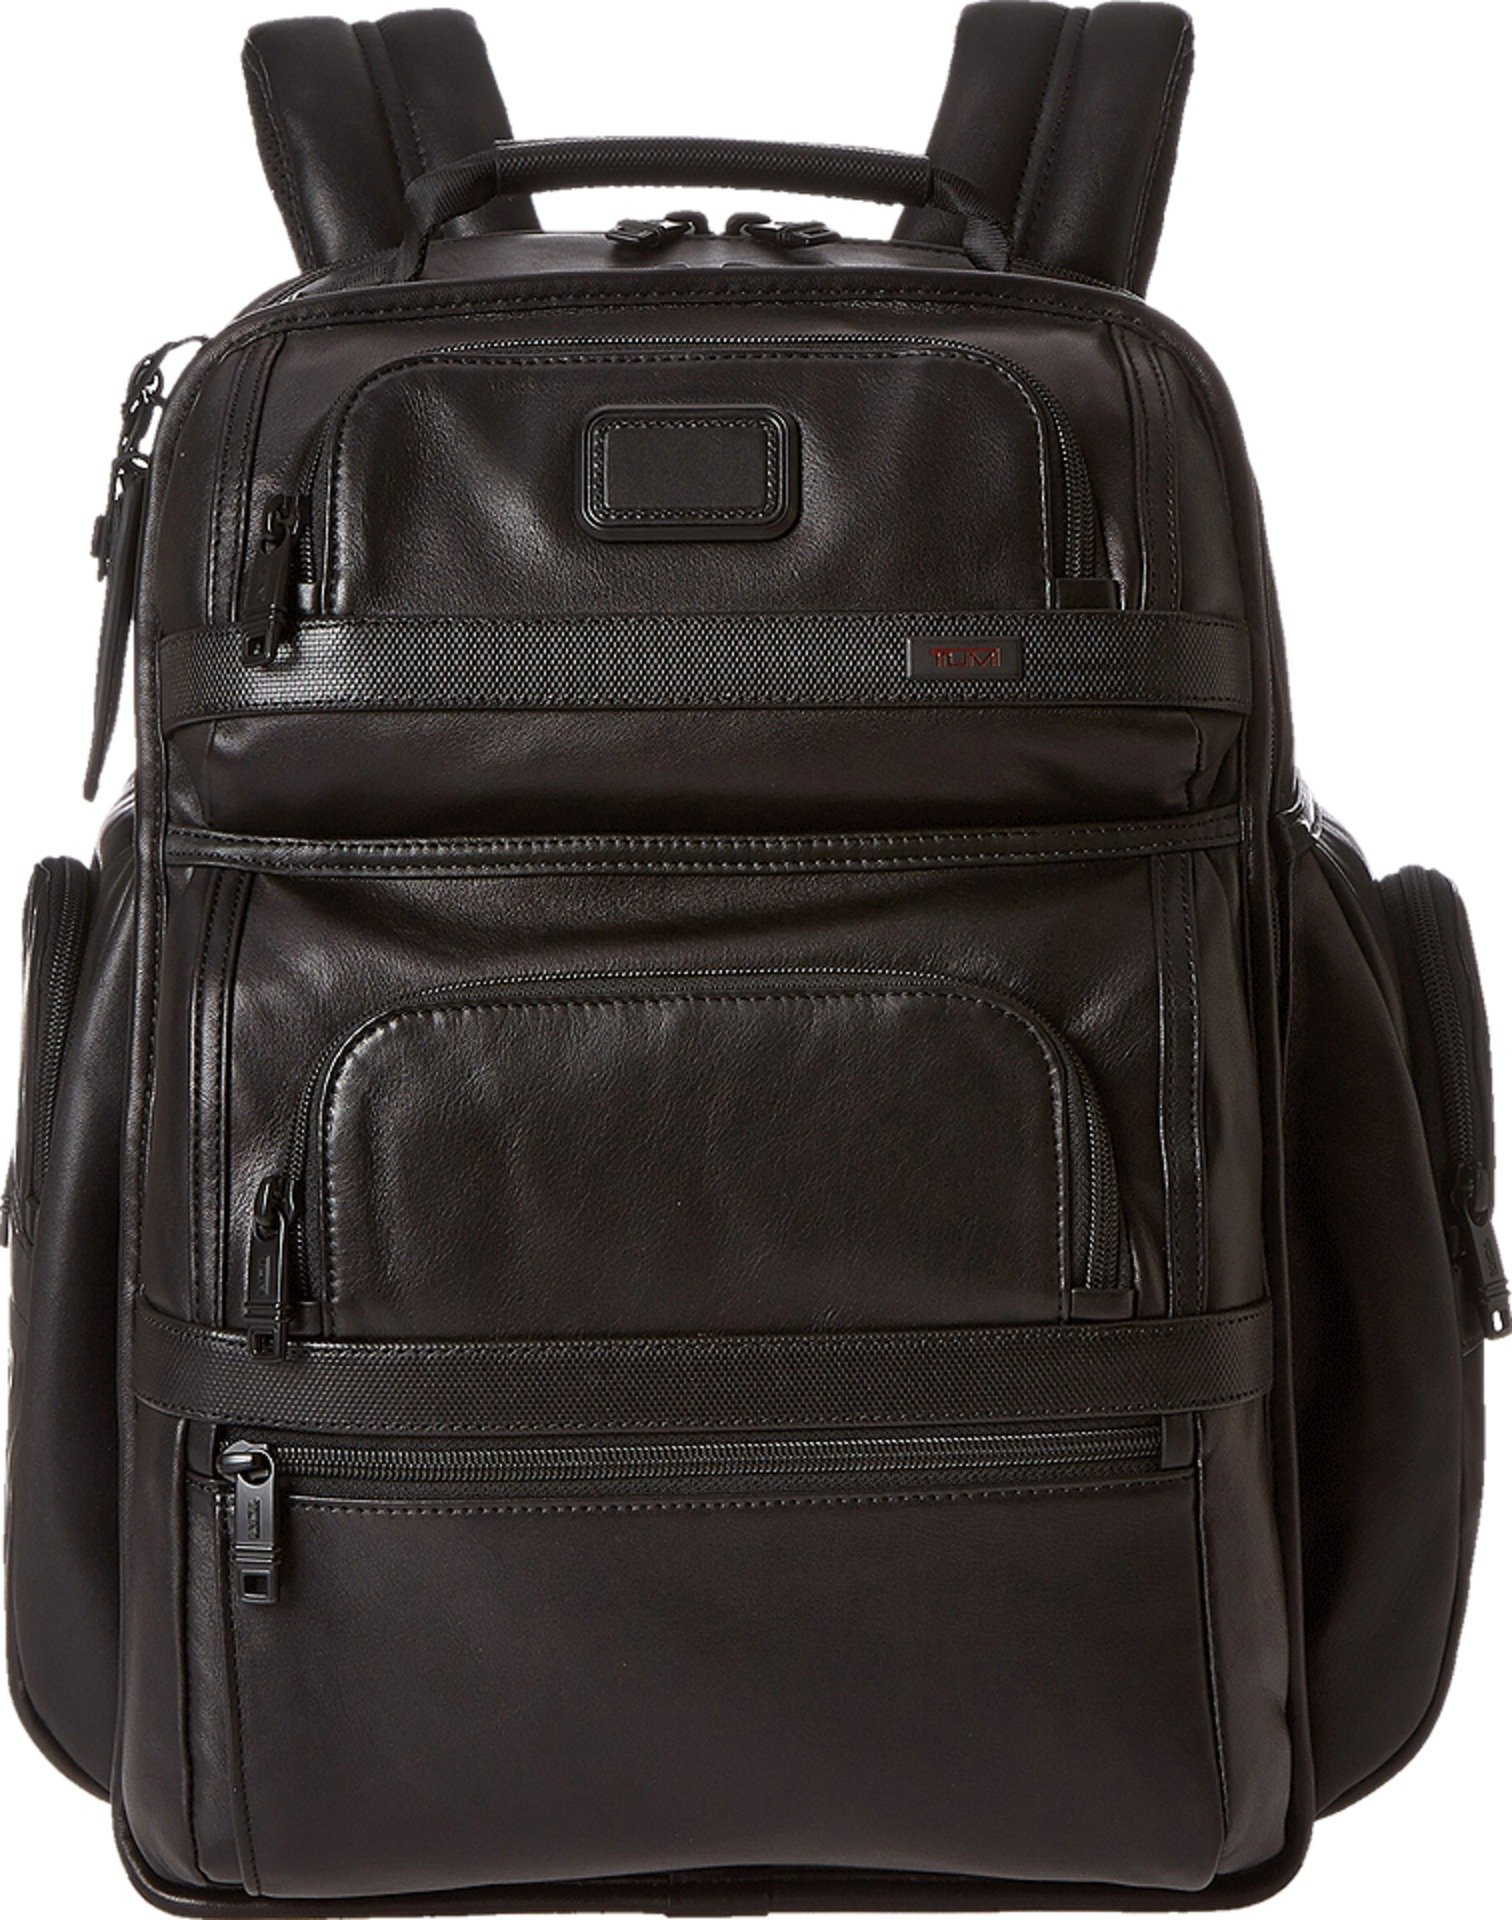 Tumi Alpha 2 T-Pass Business Class Leather Brief Pack, Black, One Size